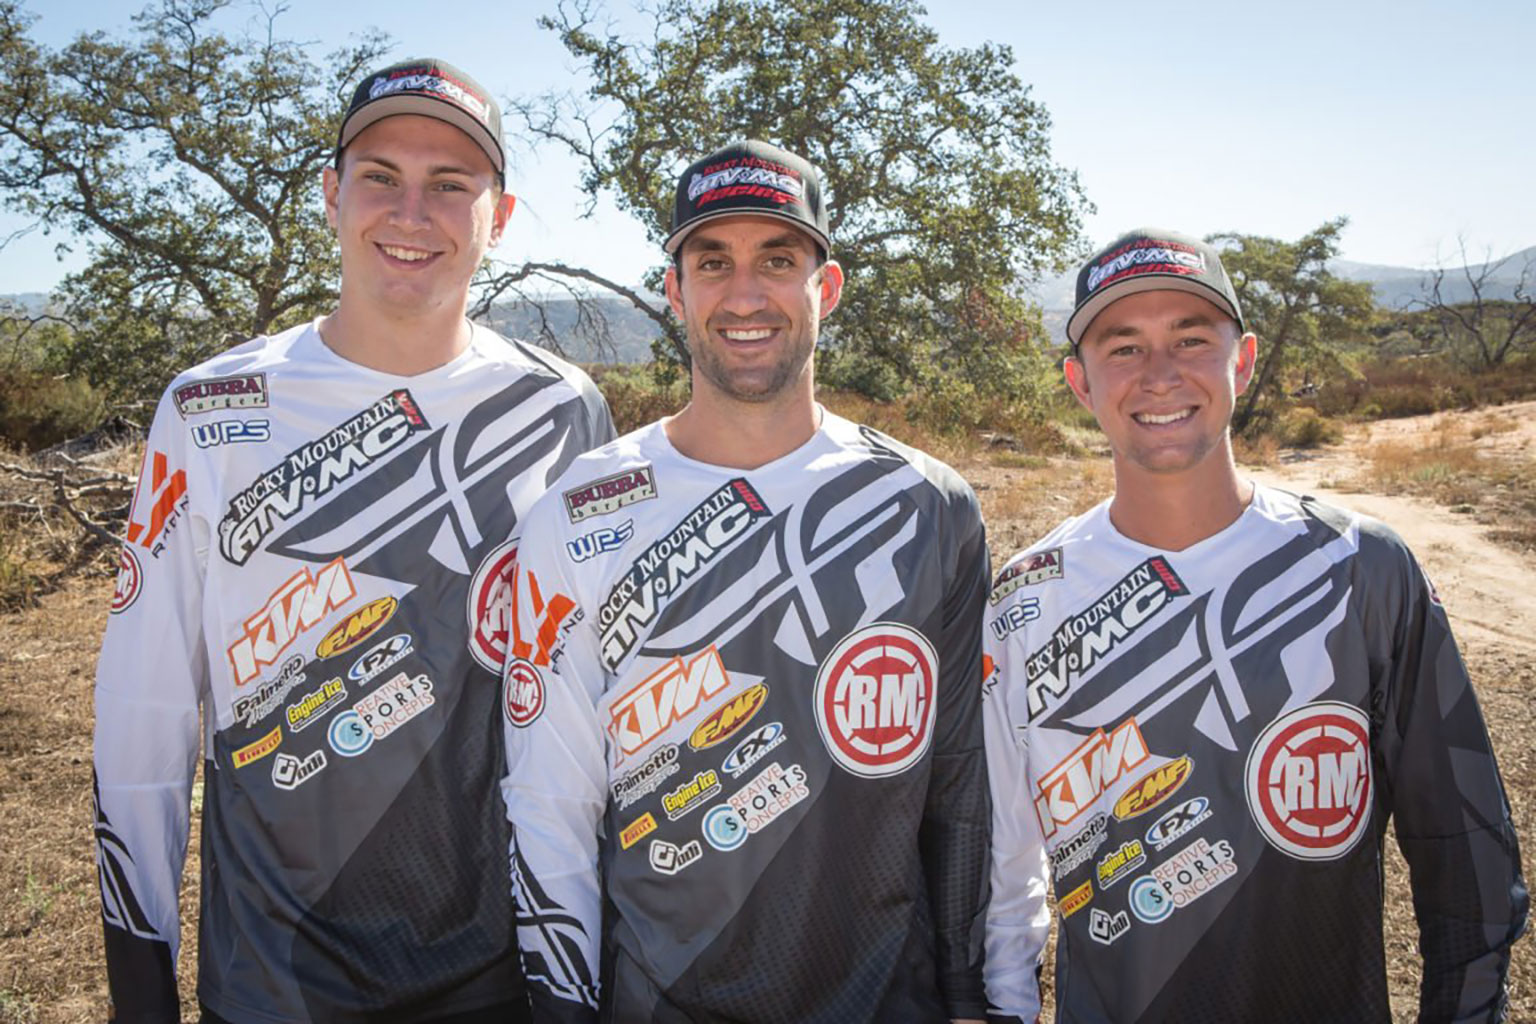 Bloss and Millsaps stay with the team that was formerly BTO, and are now joined by Blake Baggett